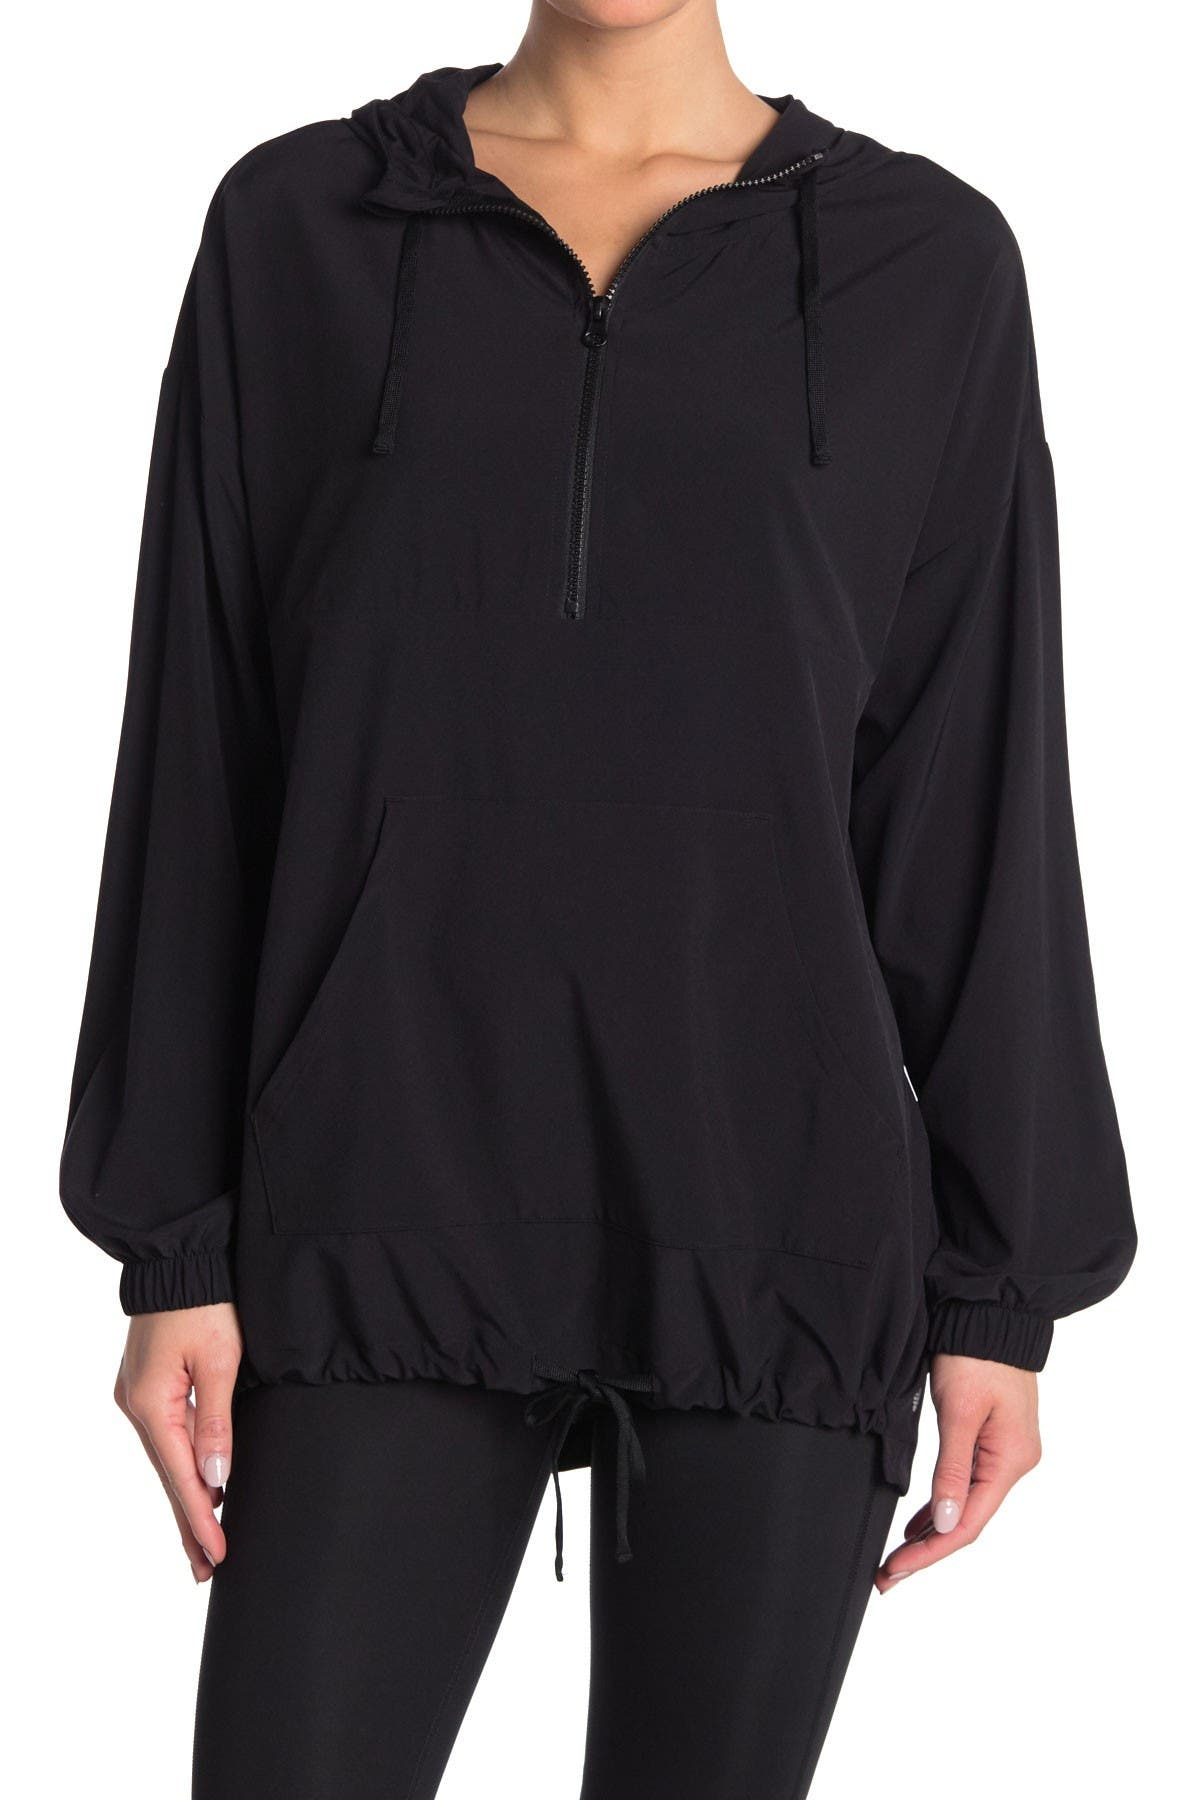 Image of Z By Zella Take A Hike Anorak Pullover